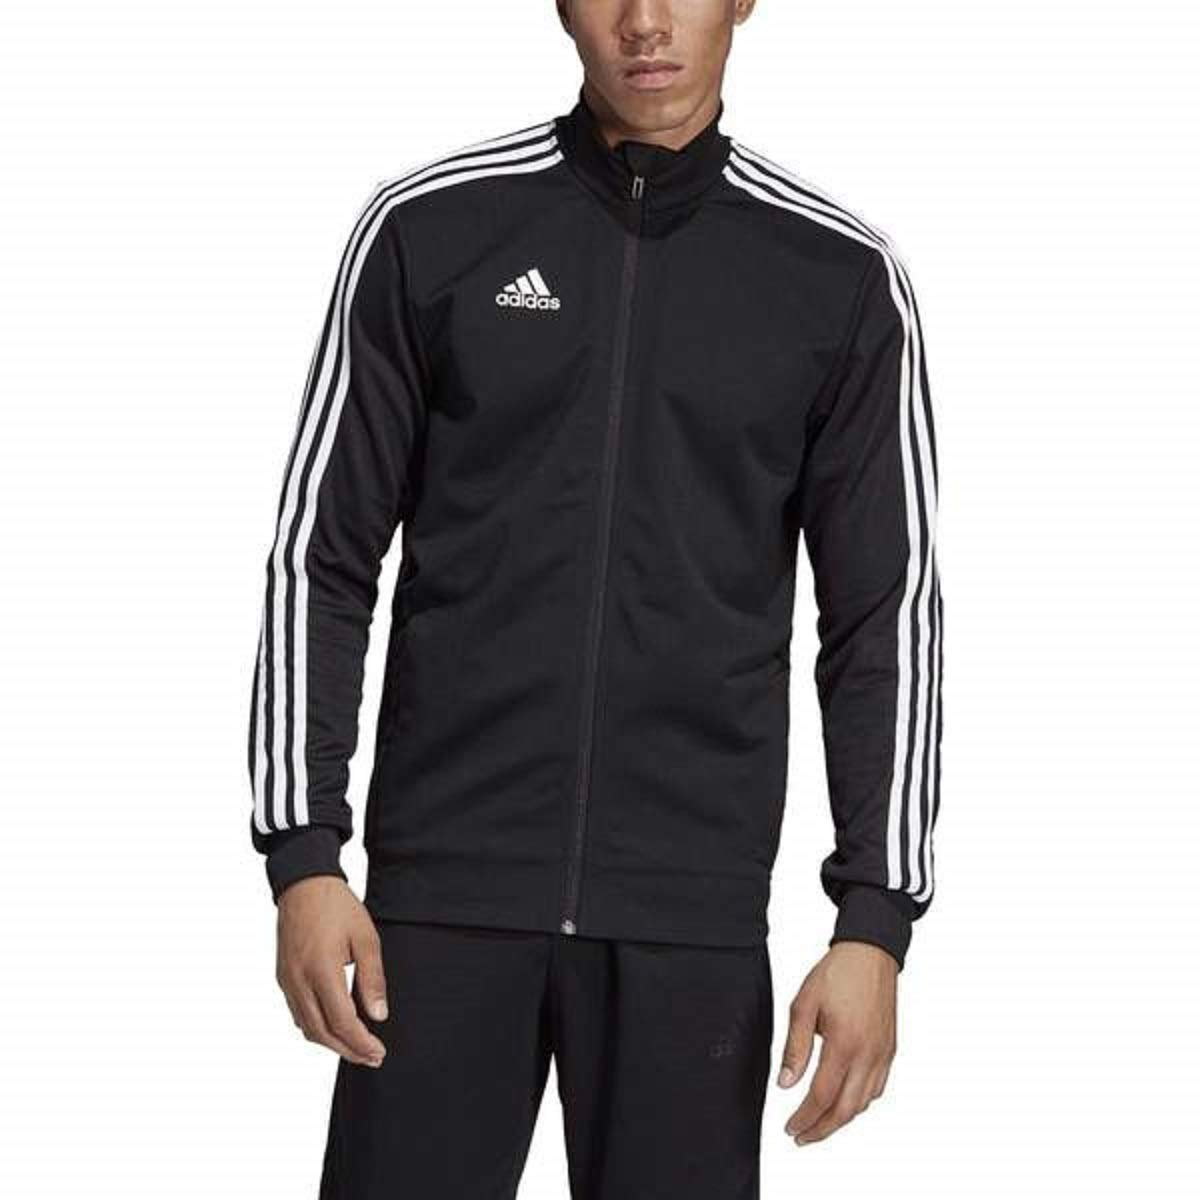 adidas Men's Tiro 19 Track Suit (M Jacket/L Pant, Black/White) by adidas